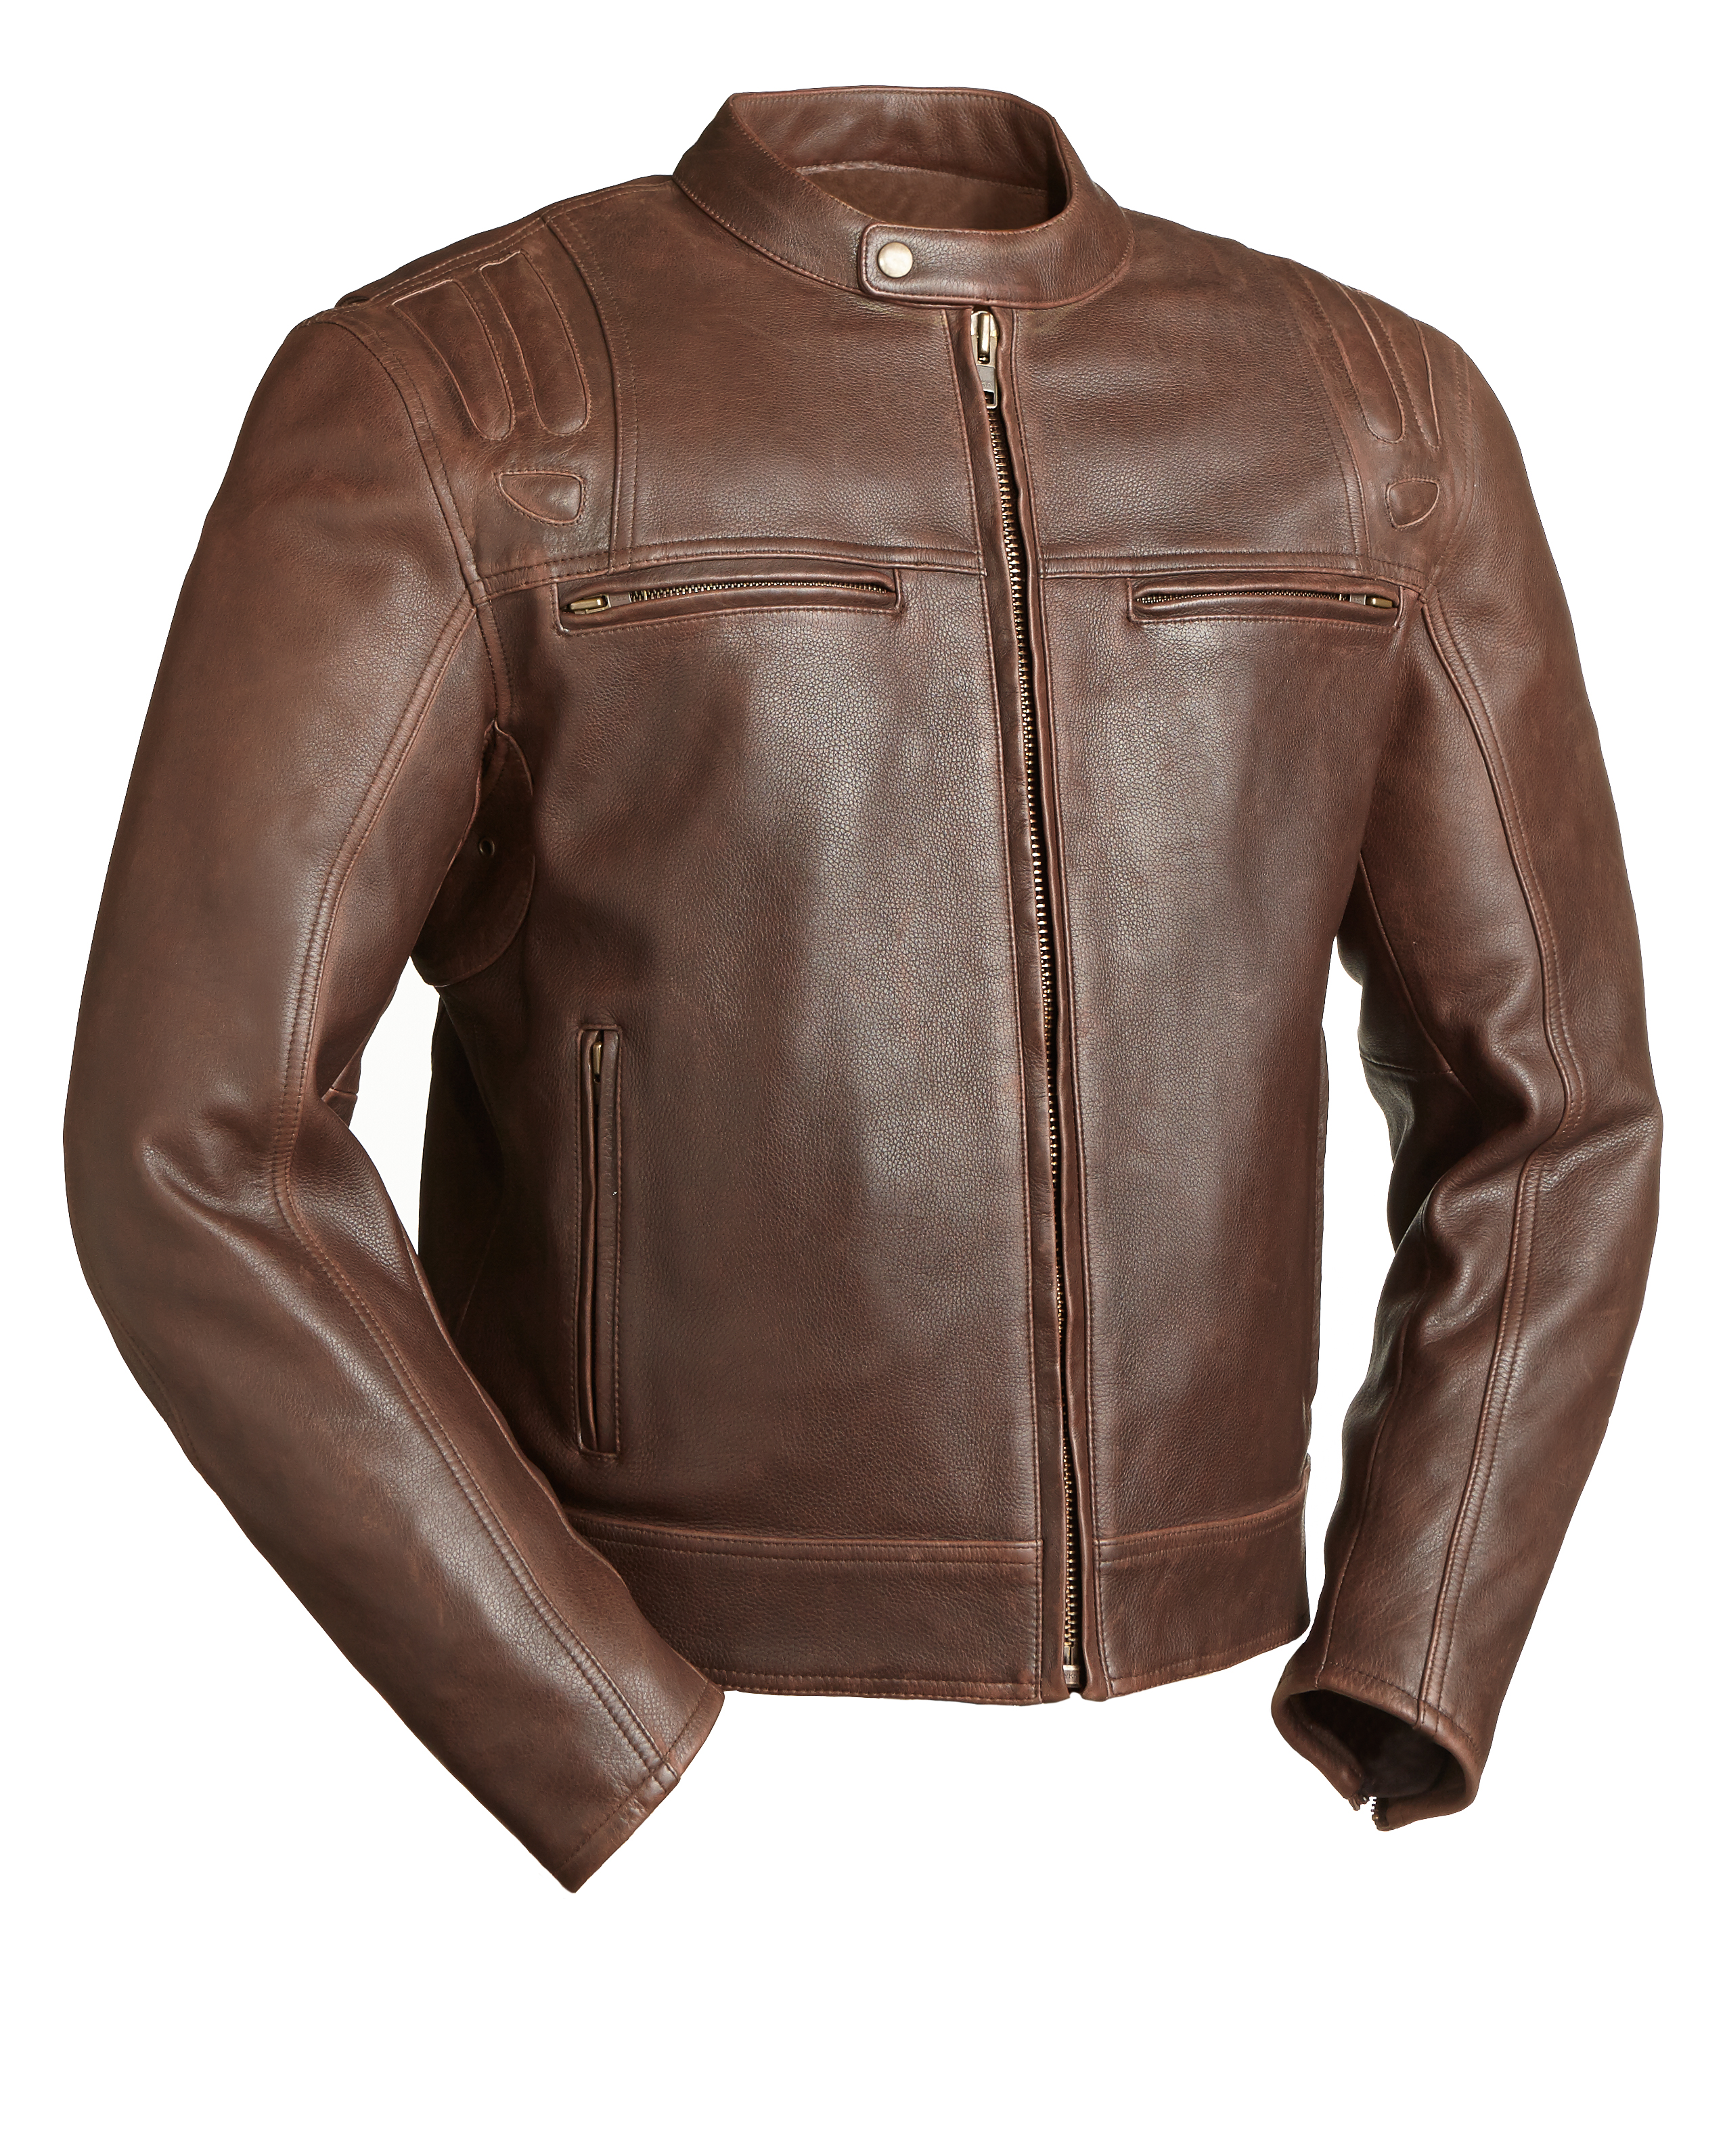 Leather jacket manufacturers